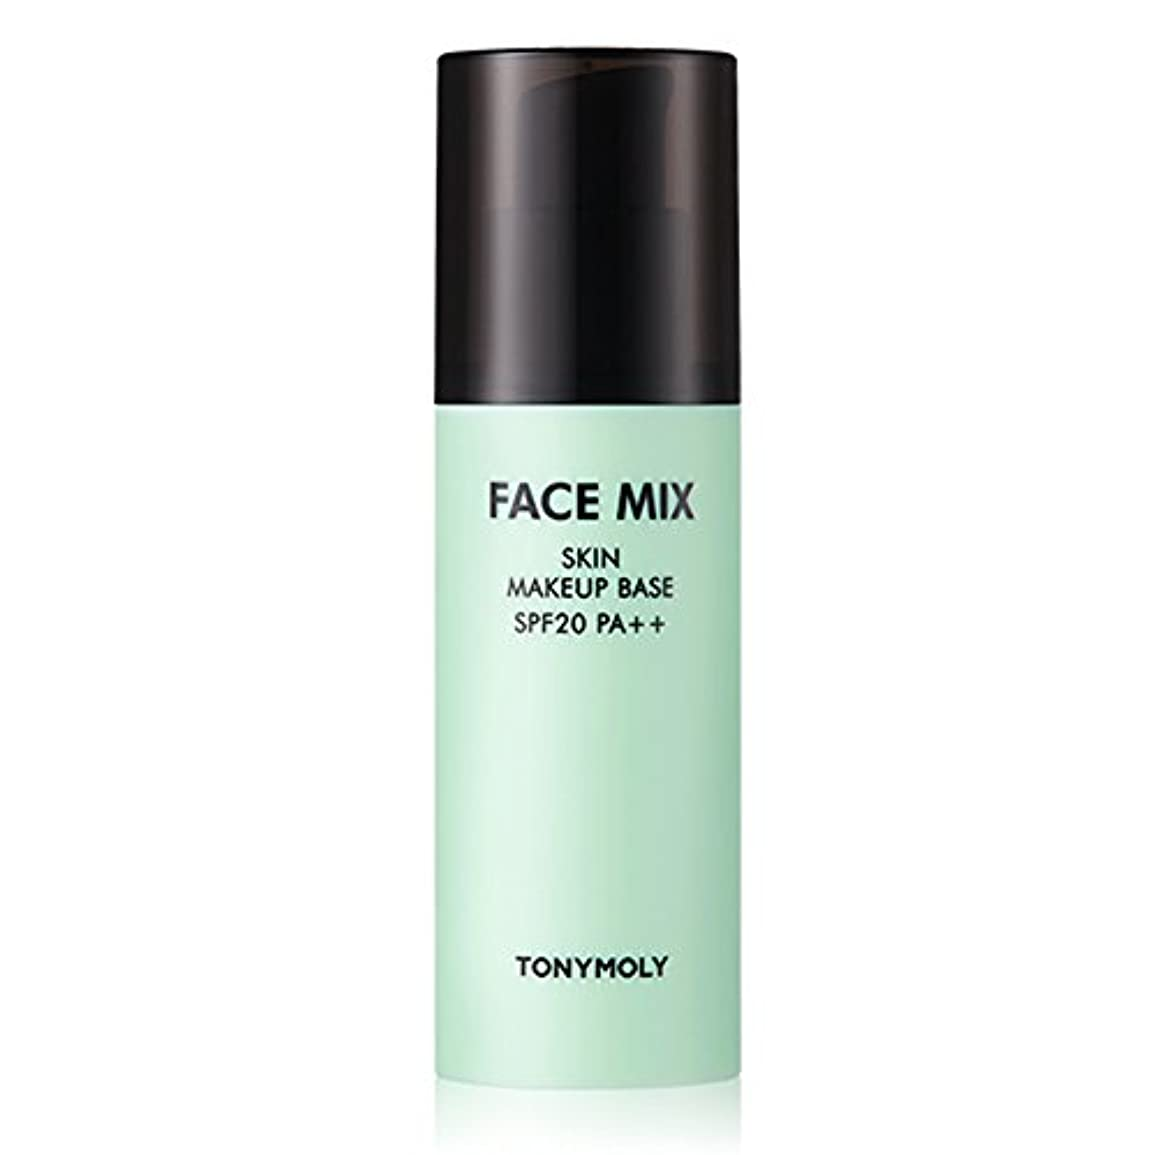 入口葉を集める二年生TONYMOLY FACE MIX SKIN MAKEUP BASE 01 MIX GREEN SPF20 PA+++ 30g